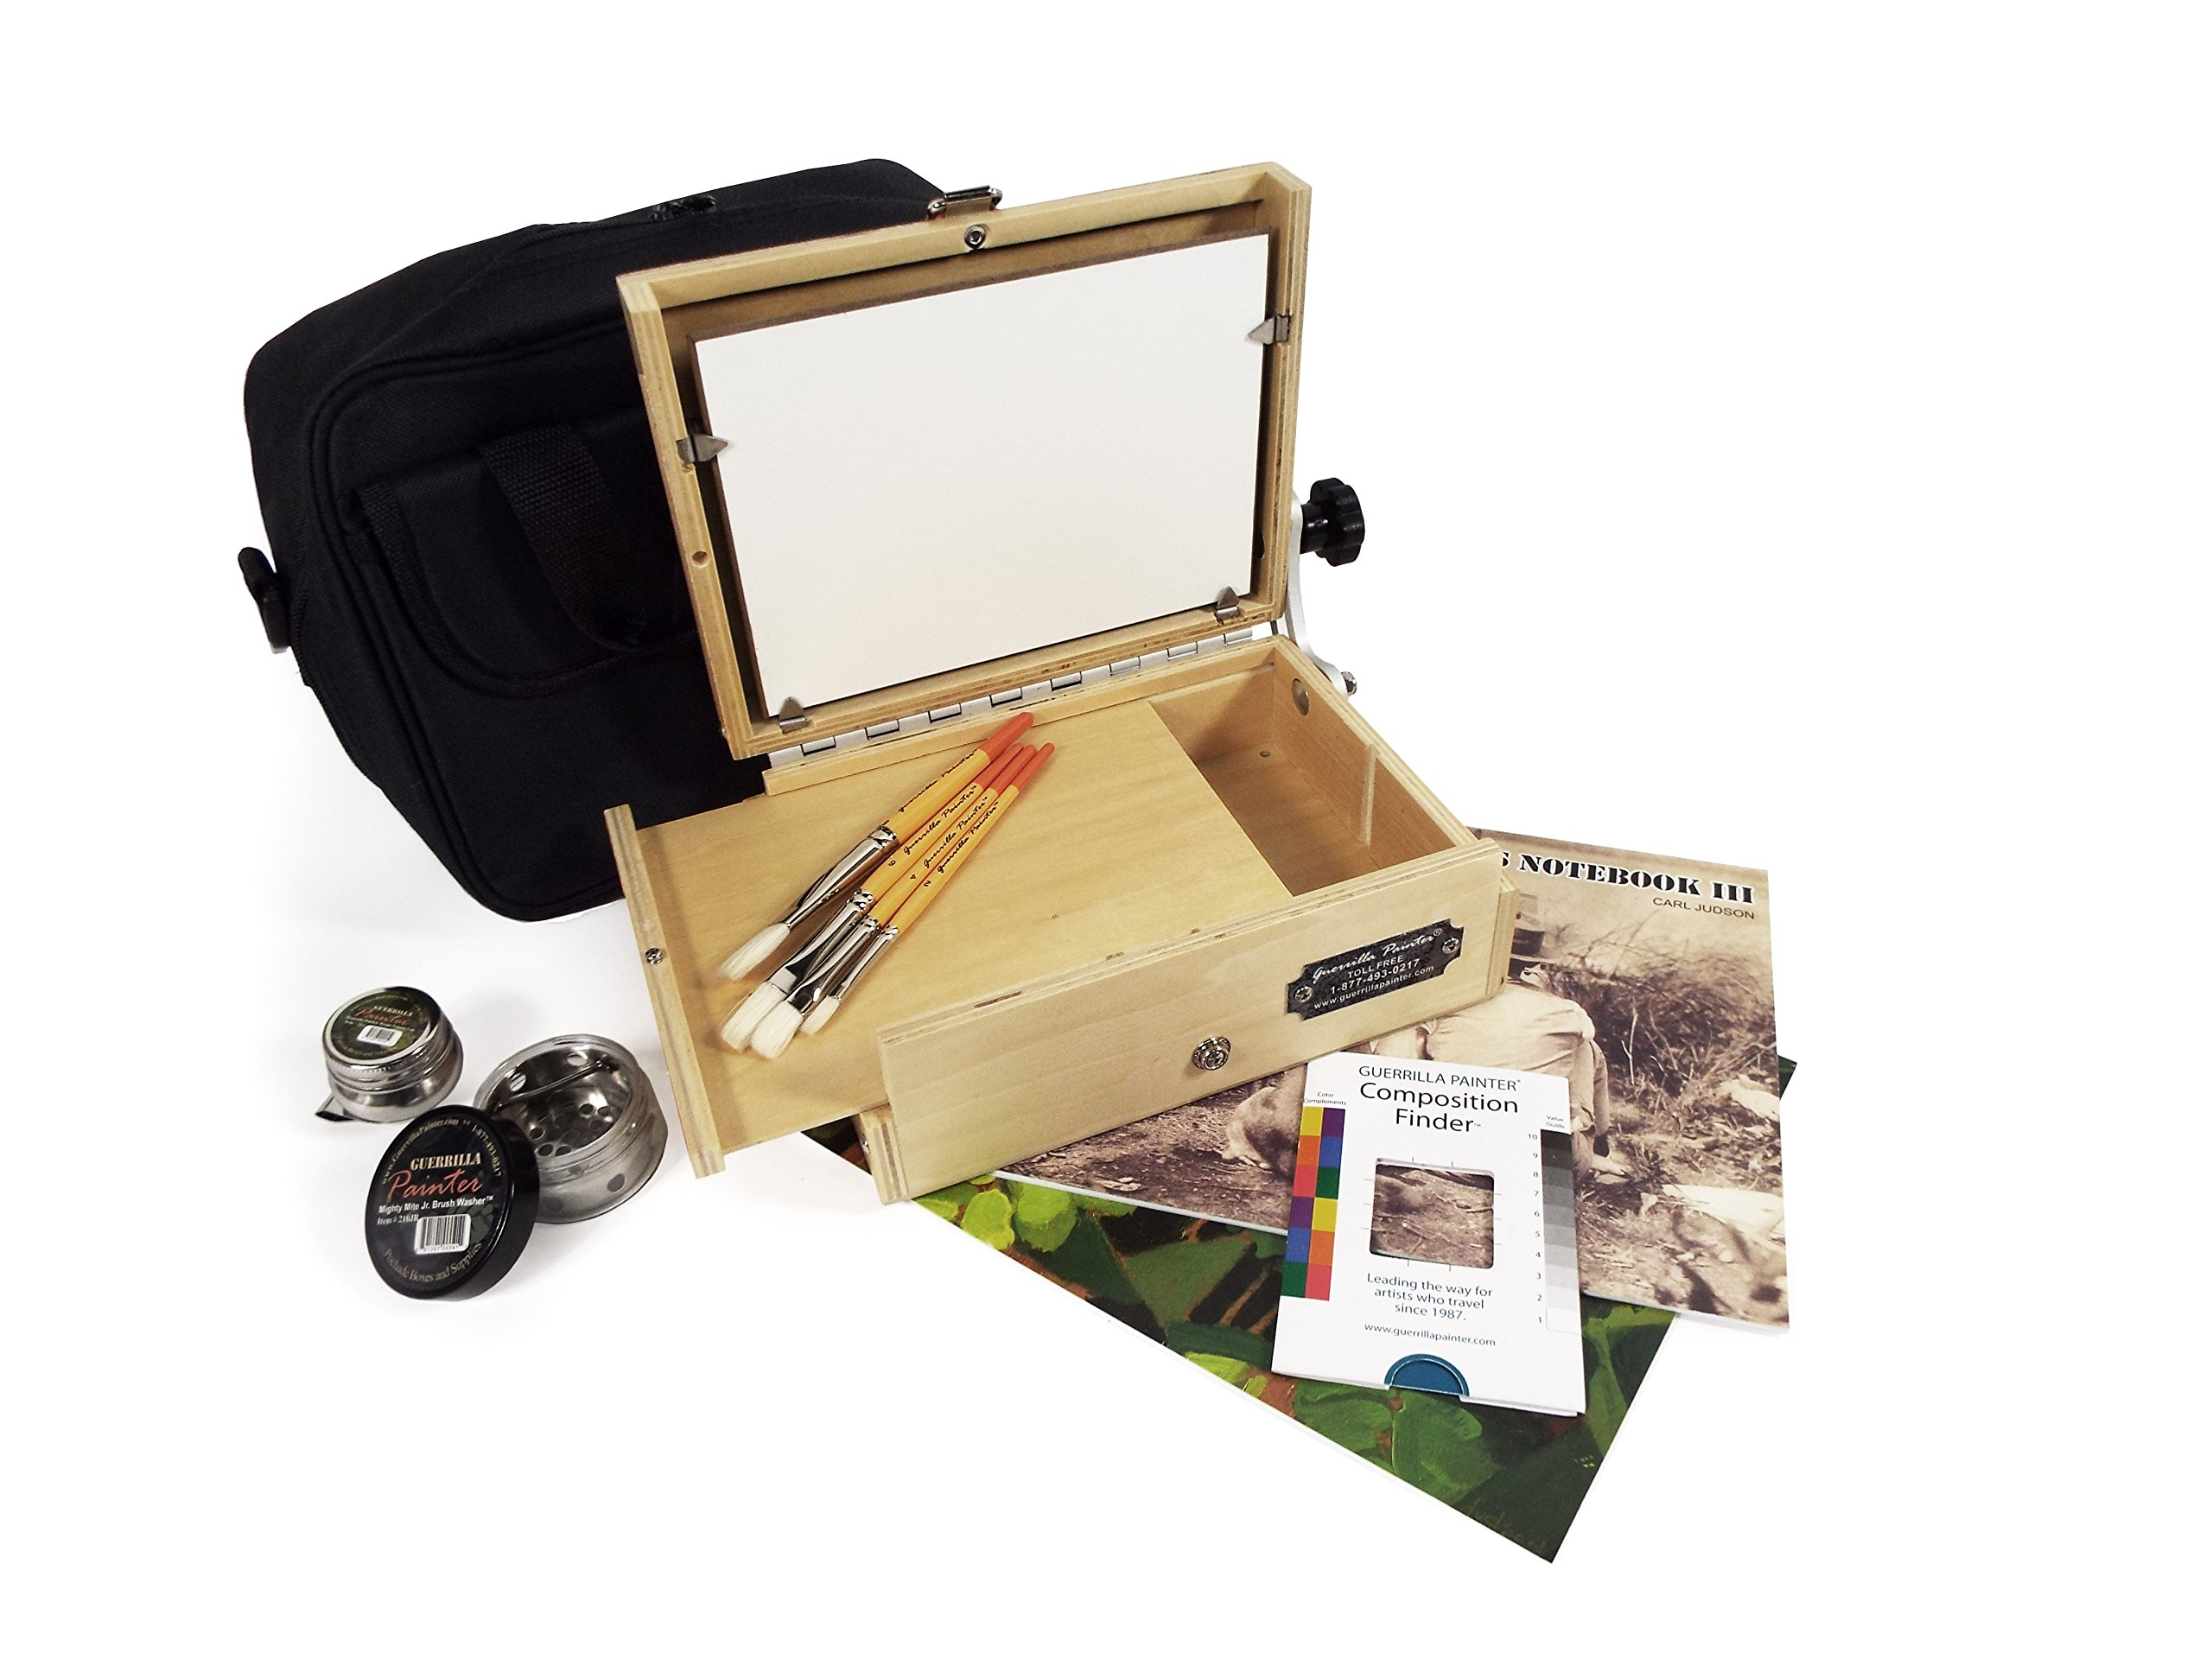 Guerrilla Painter 6 by 8 Thumbox Oil and Acrylic Plein Air Kit by Guerrilla Painter